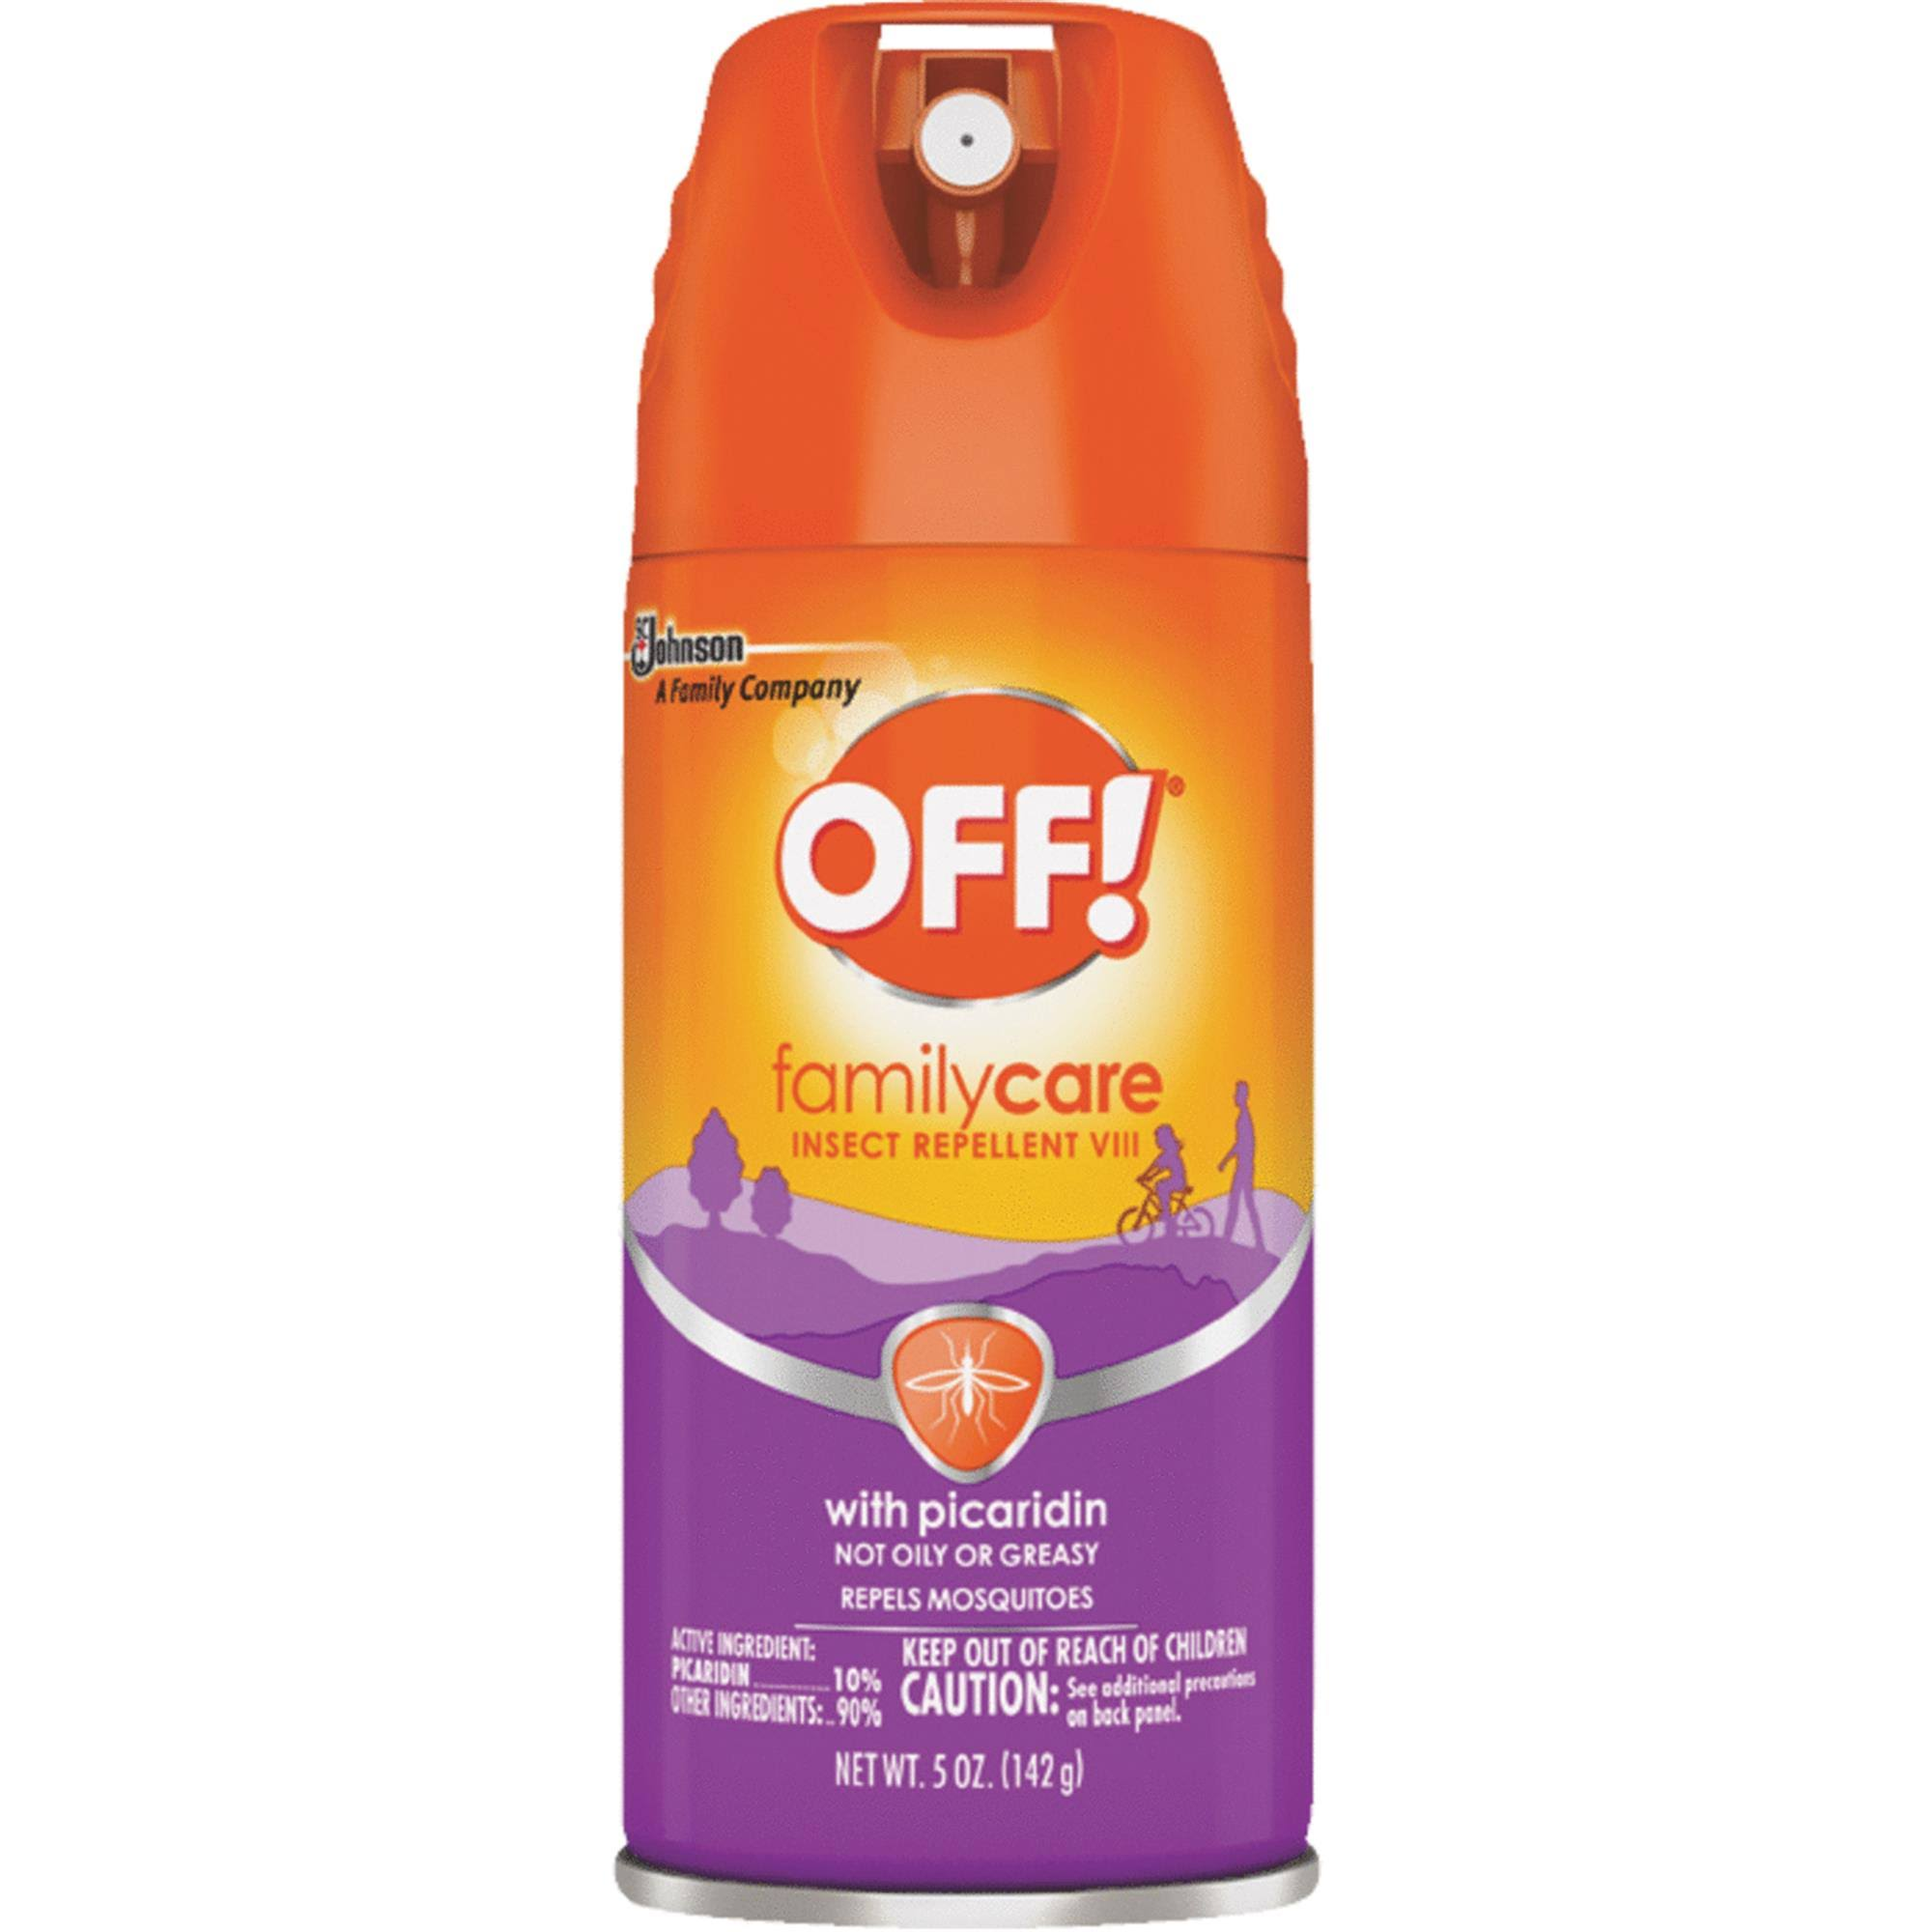 Off! Family Care Insect Repellent - with Picaridin, 5oz